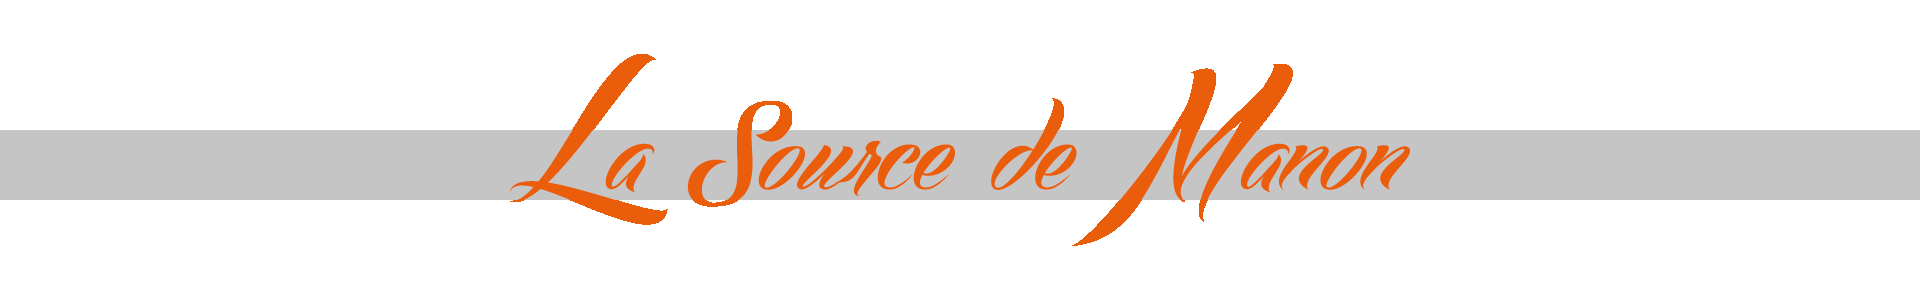 La Source de Manon - logo